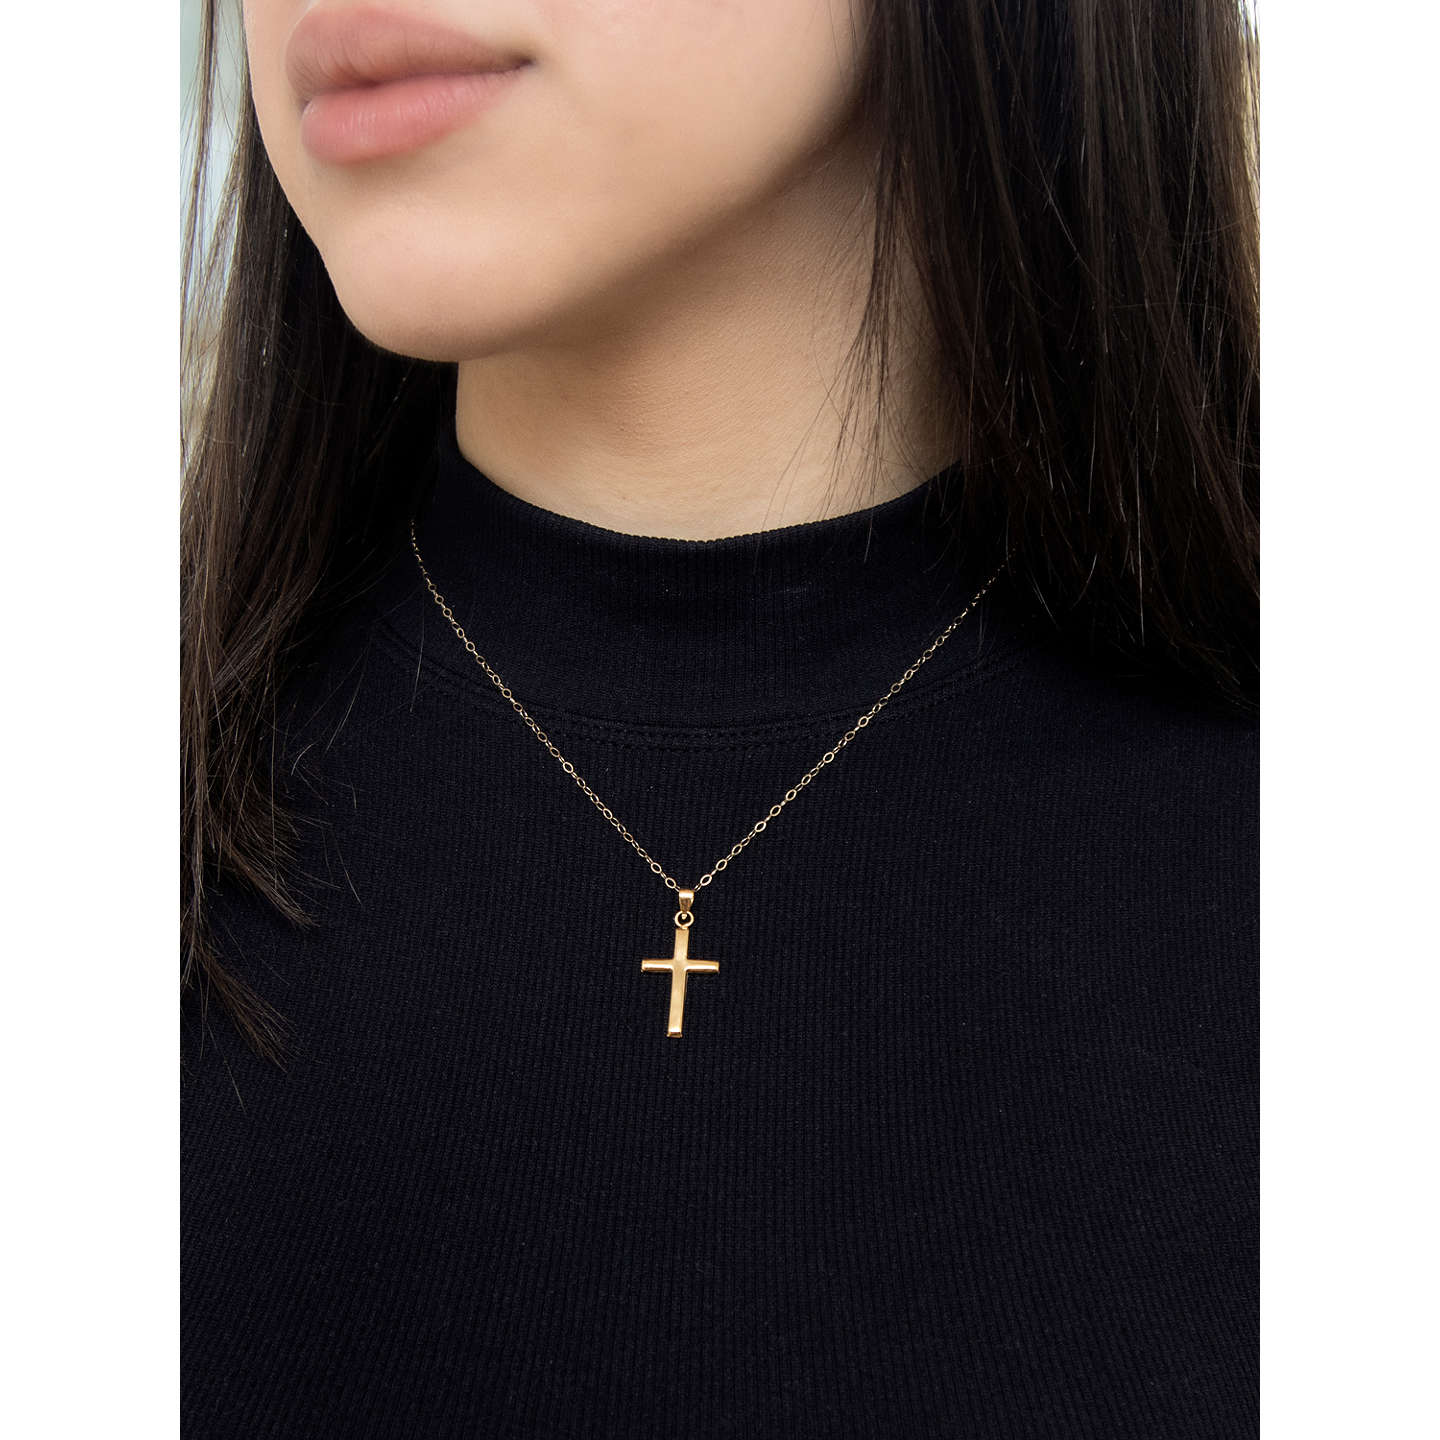 Ibb 9ct yellow gold cross pendant necklace gold at john lewis buyibb 9ct yellow gold cross pendant necklace gold online at johnlewis aloadofball Gallery